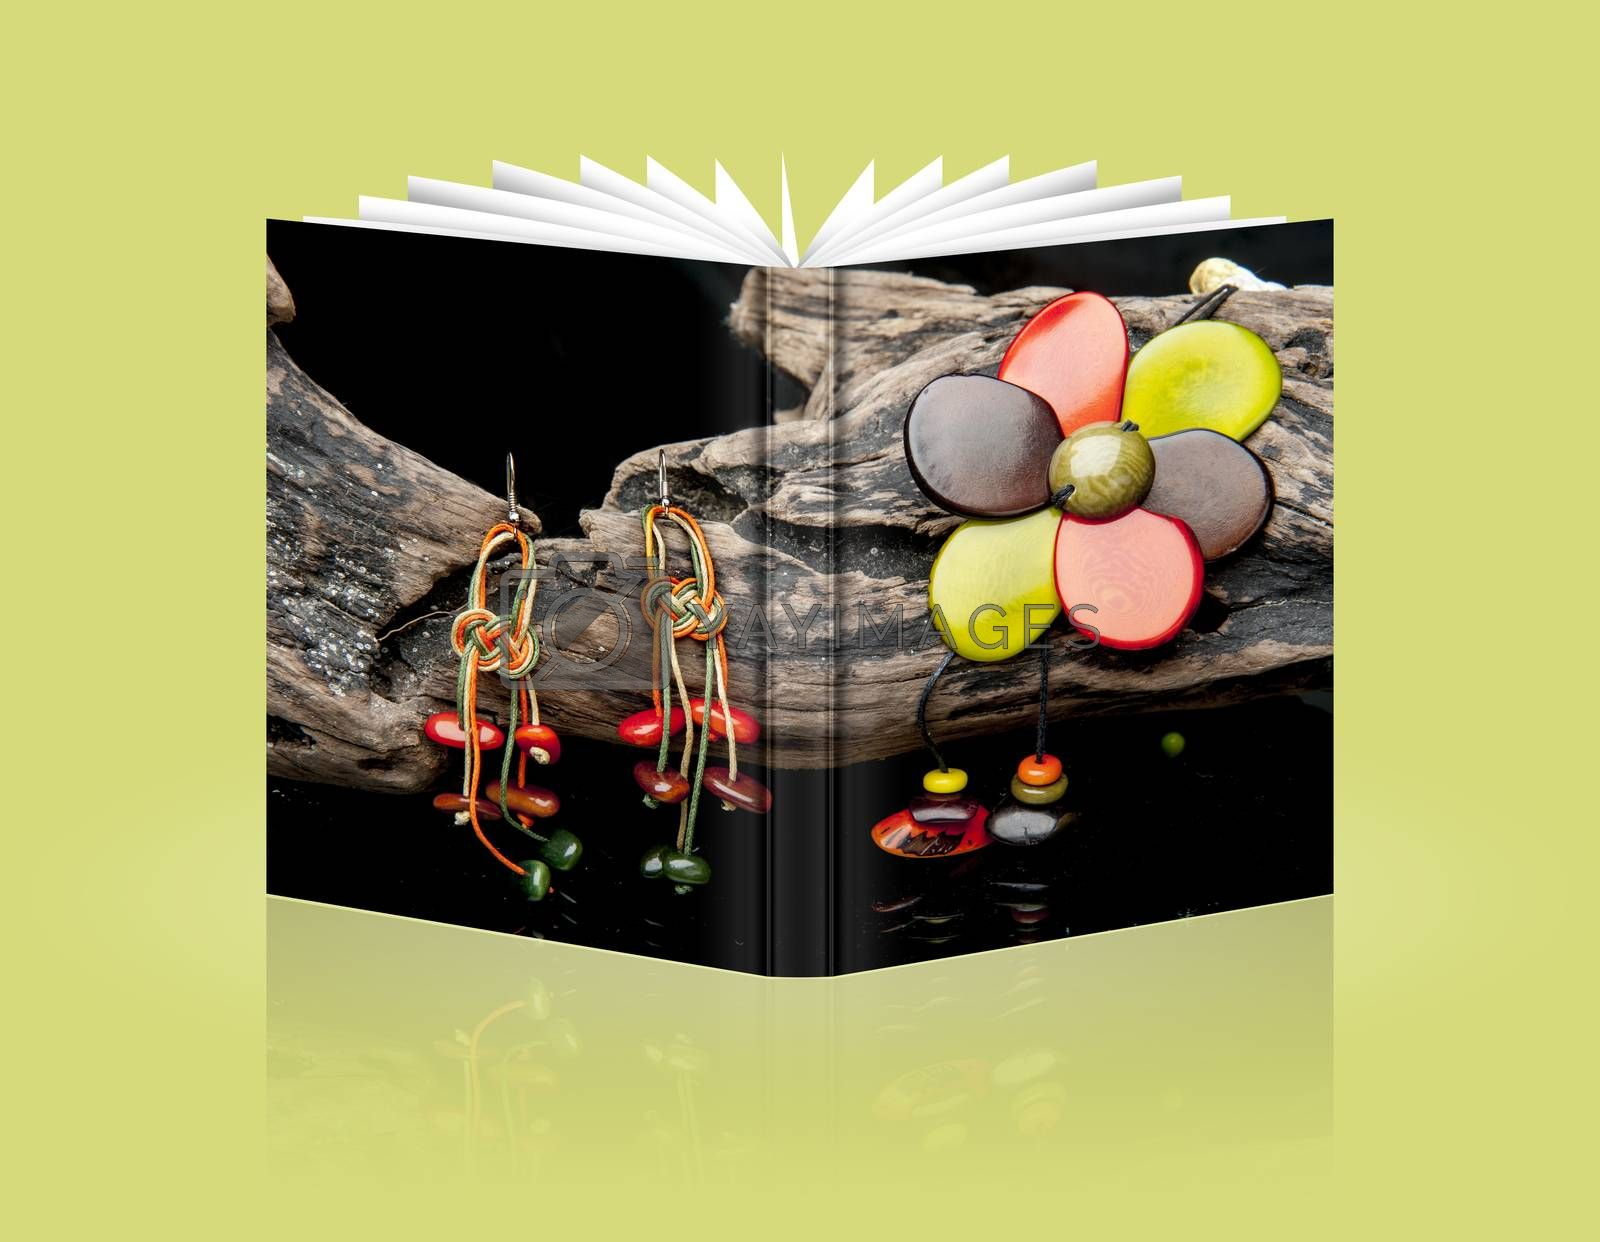 book of handcrafted jewelry handmade in Ecuador with tagua